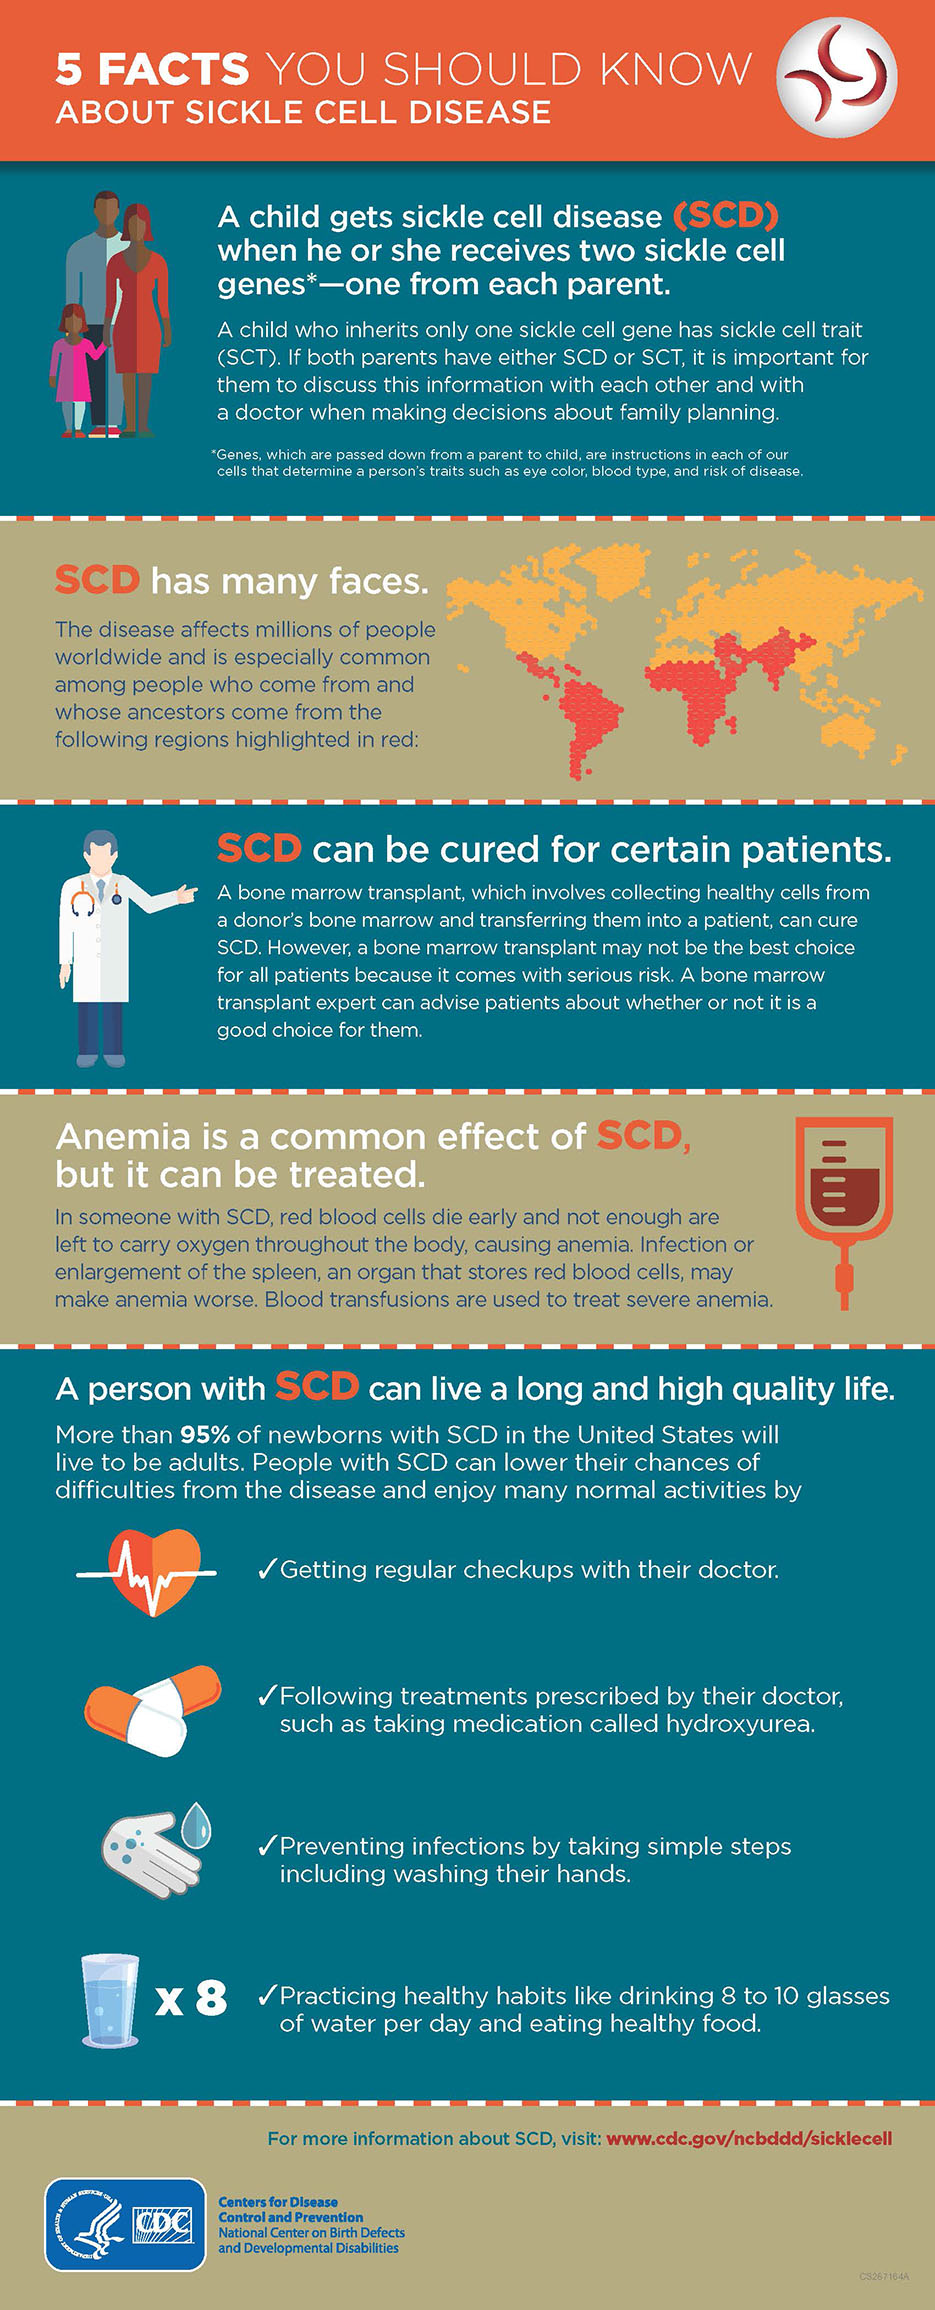 Infographic: 5 facts you should know about sickle cell disease